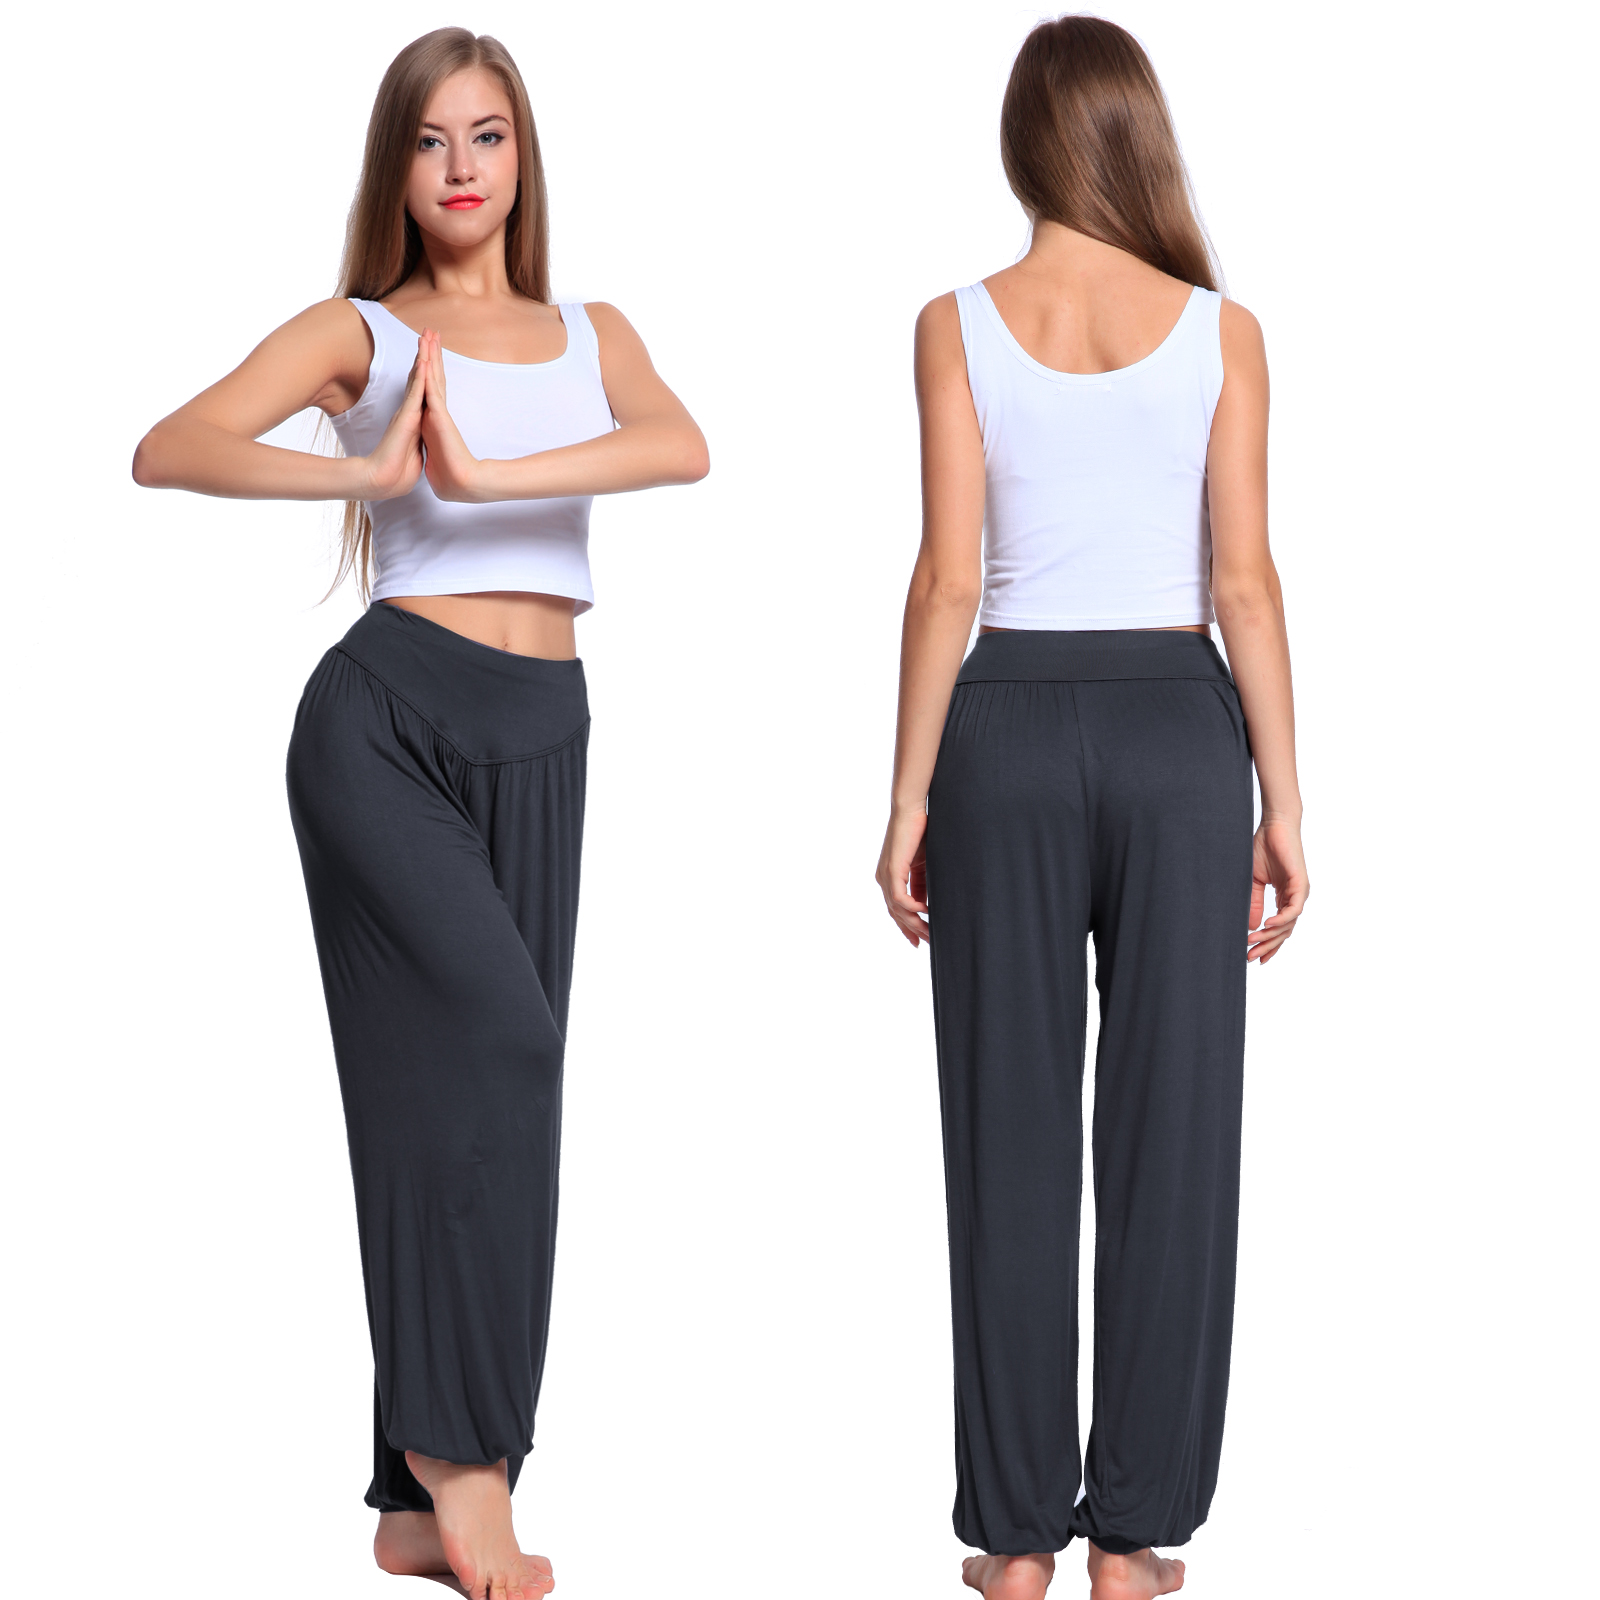 With A Comfortable Elastic Waist And Ankles This Free Size Pant Can Fit Most Body Types